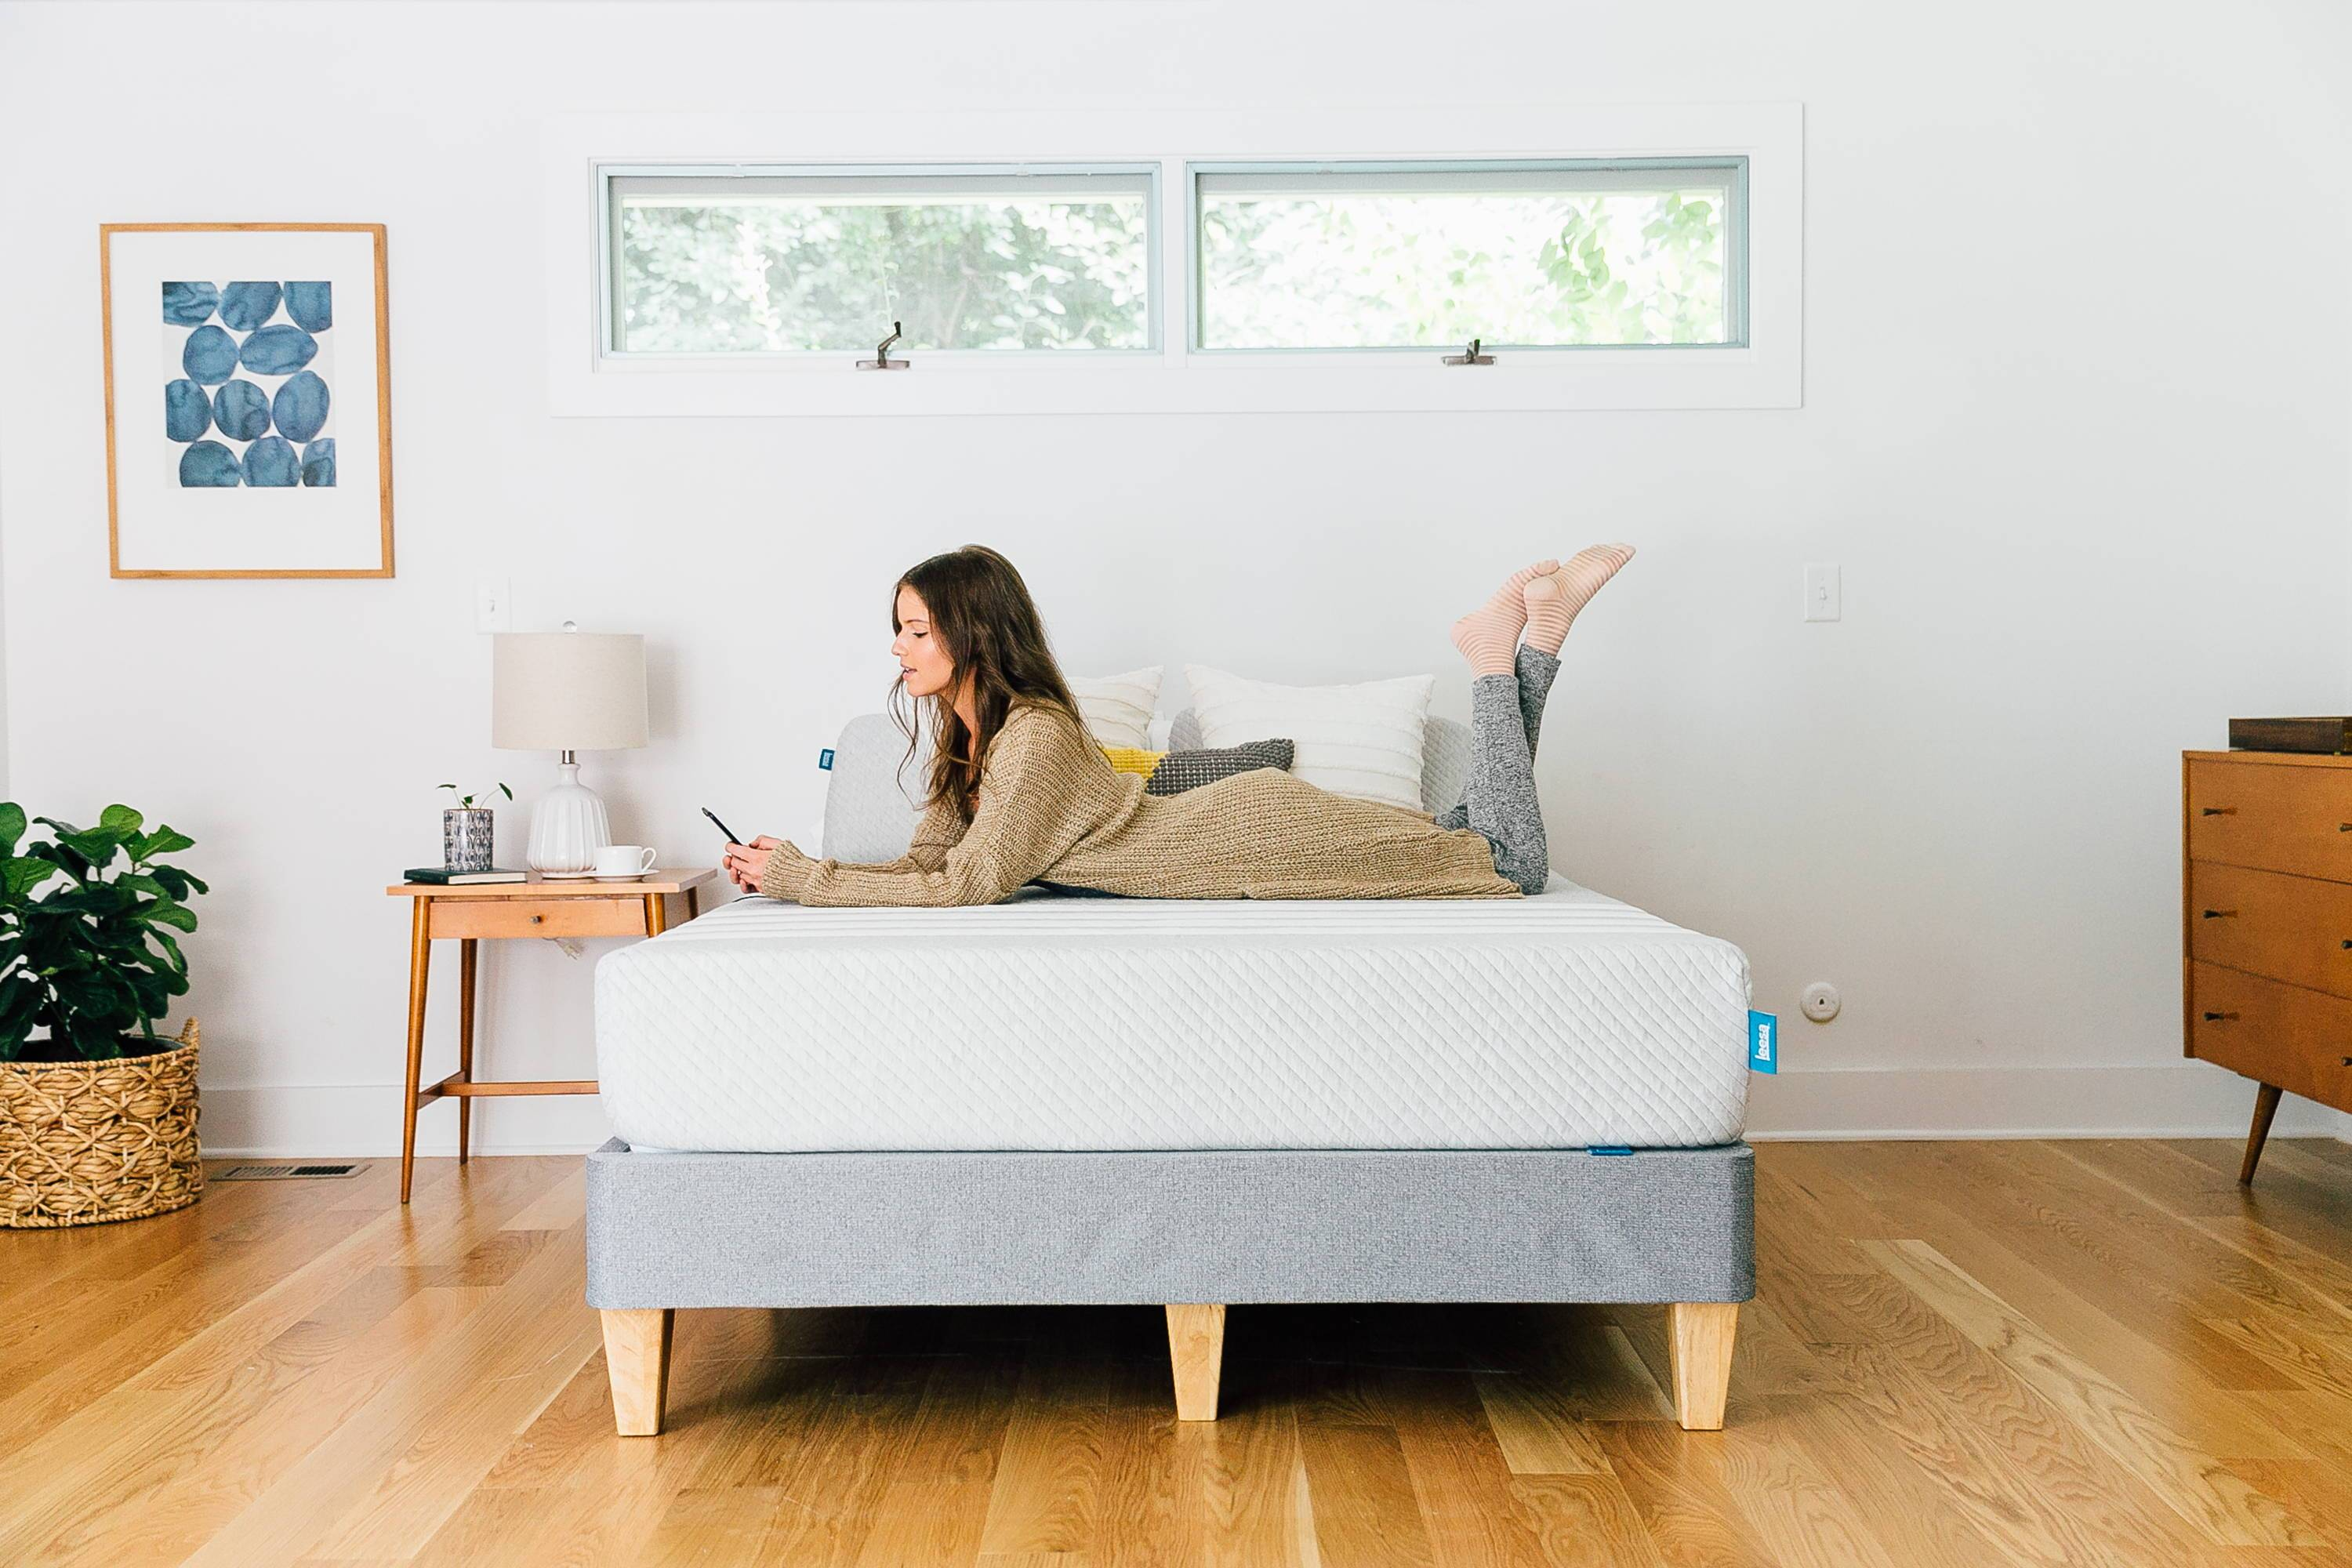 a_lady_laying_on_a_leesa_mattress_in_a_decorated_room